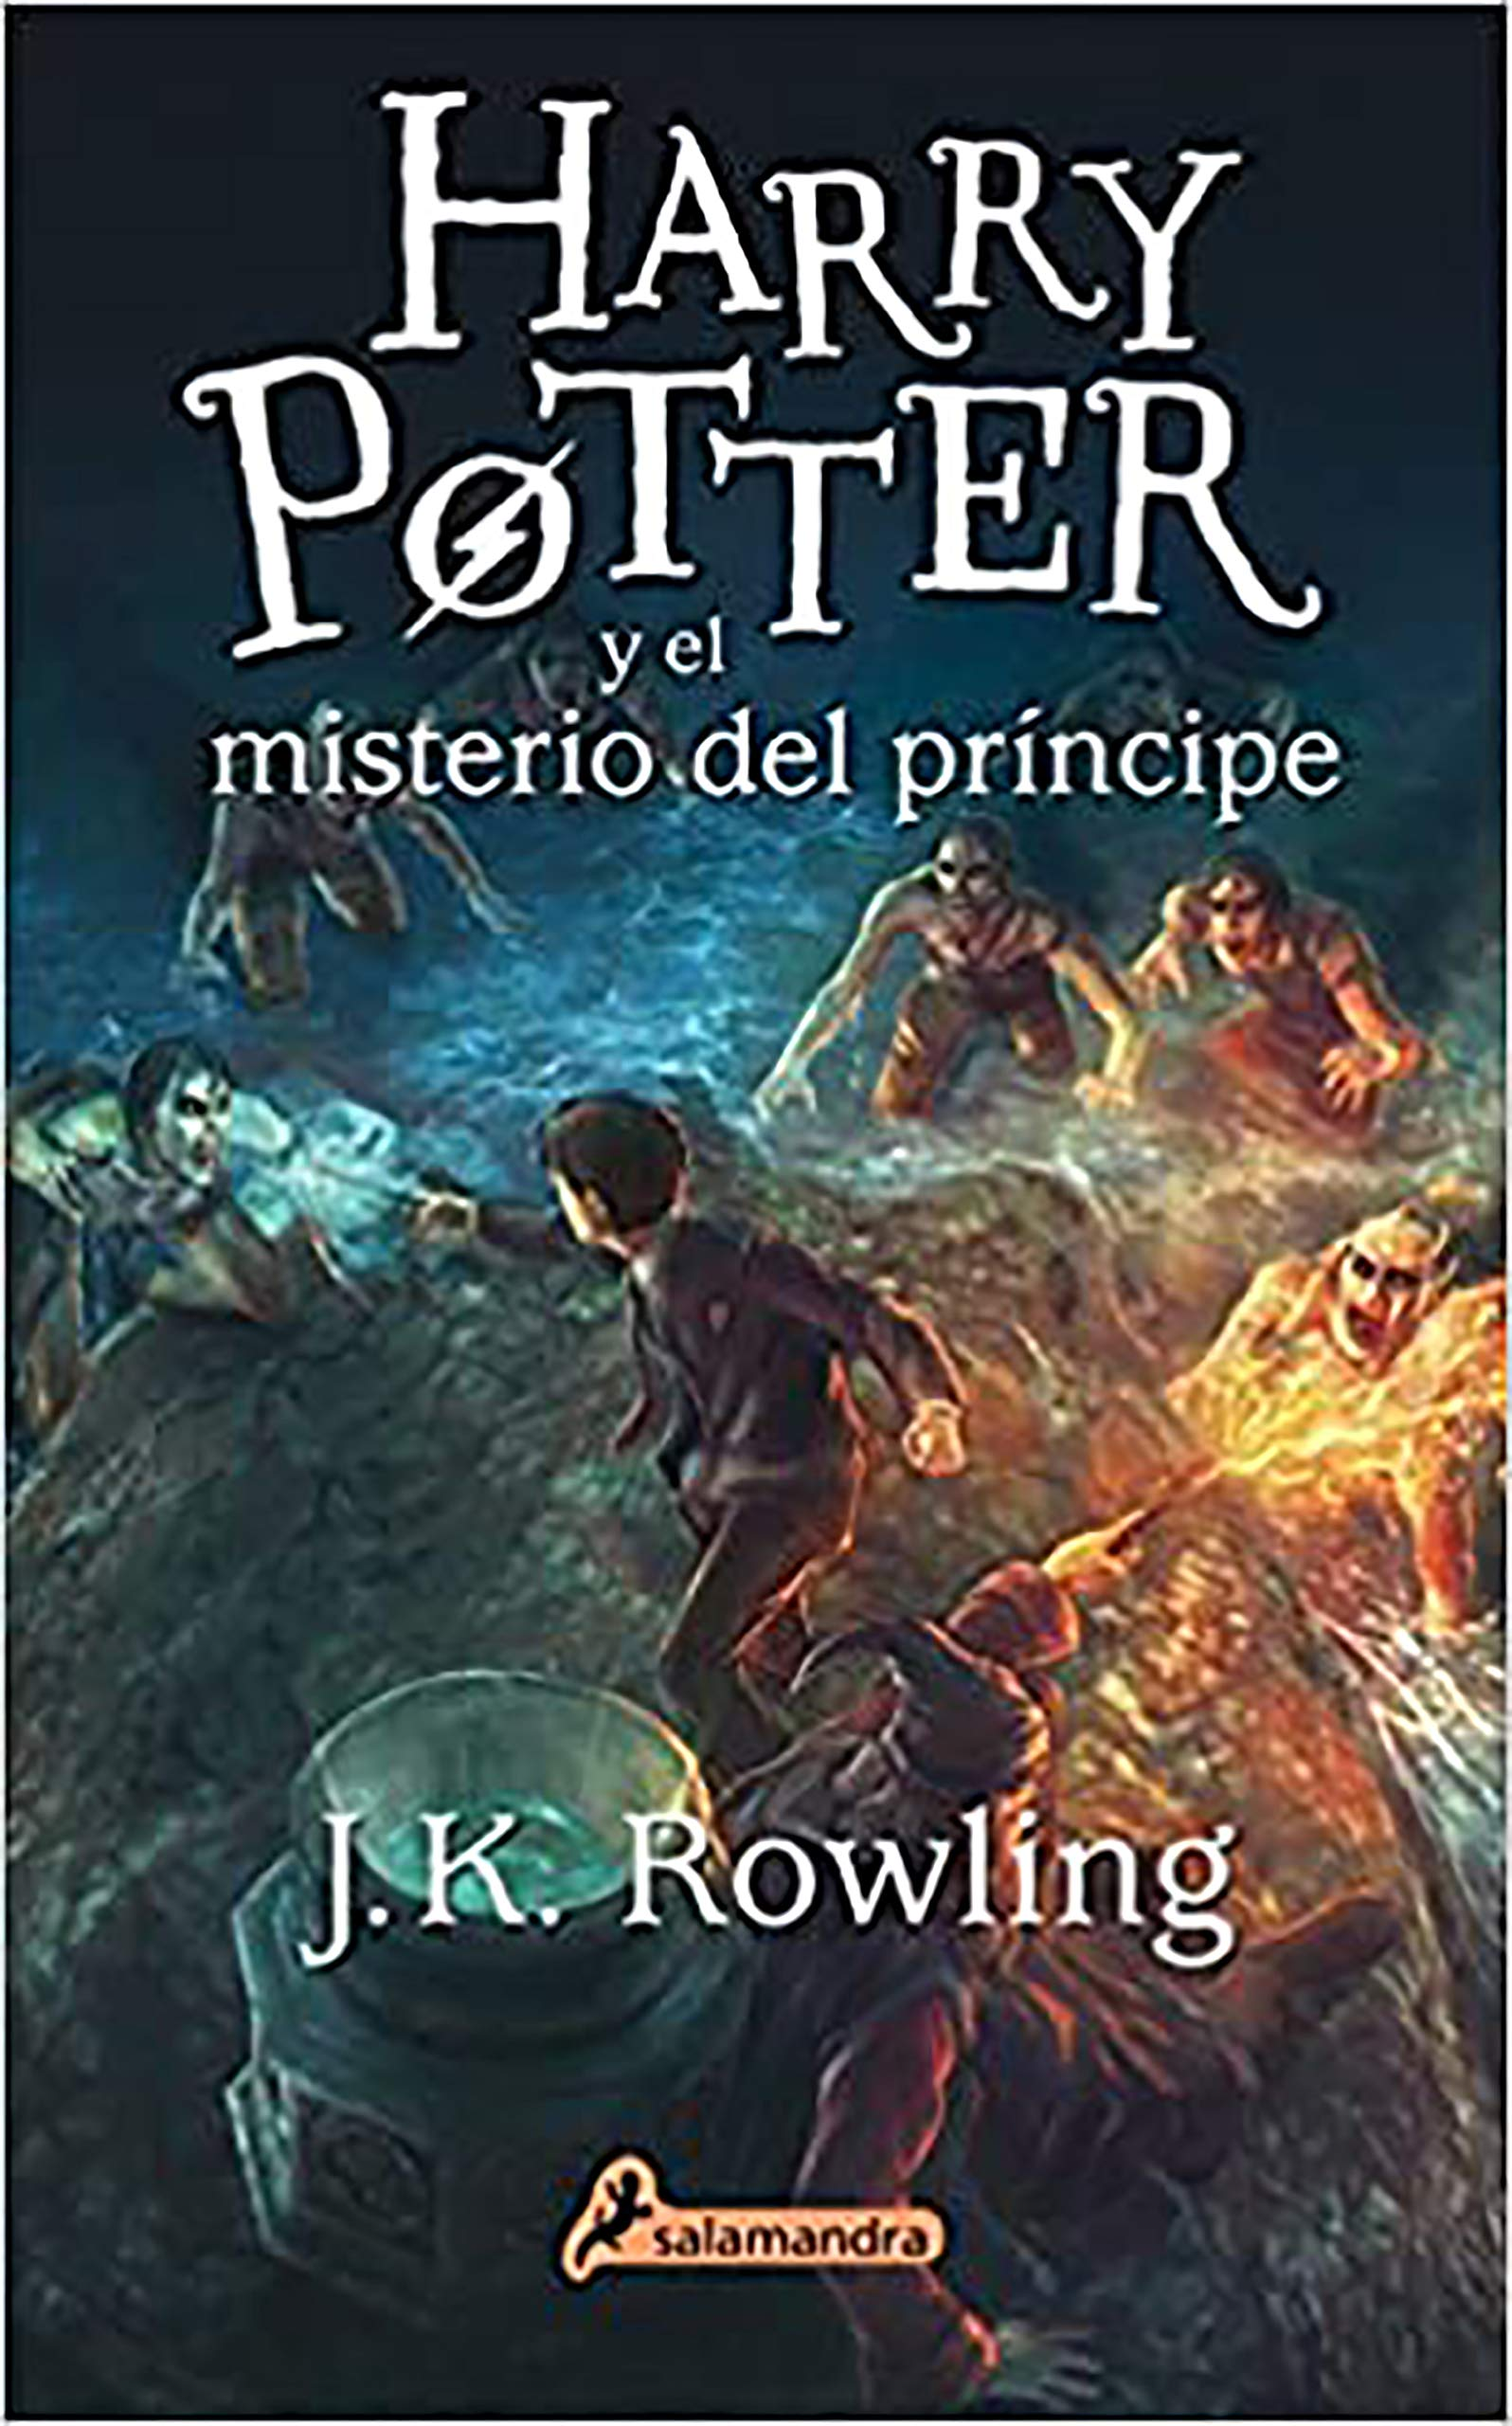 Harry Potter Y El Misterio Del Príncipe Harry Potter And The Half Blood Prince Spanish Edition 9788498386998 Rowling J K Books